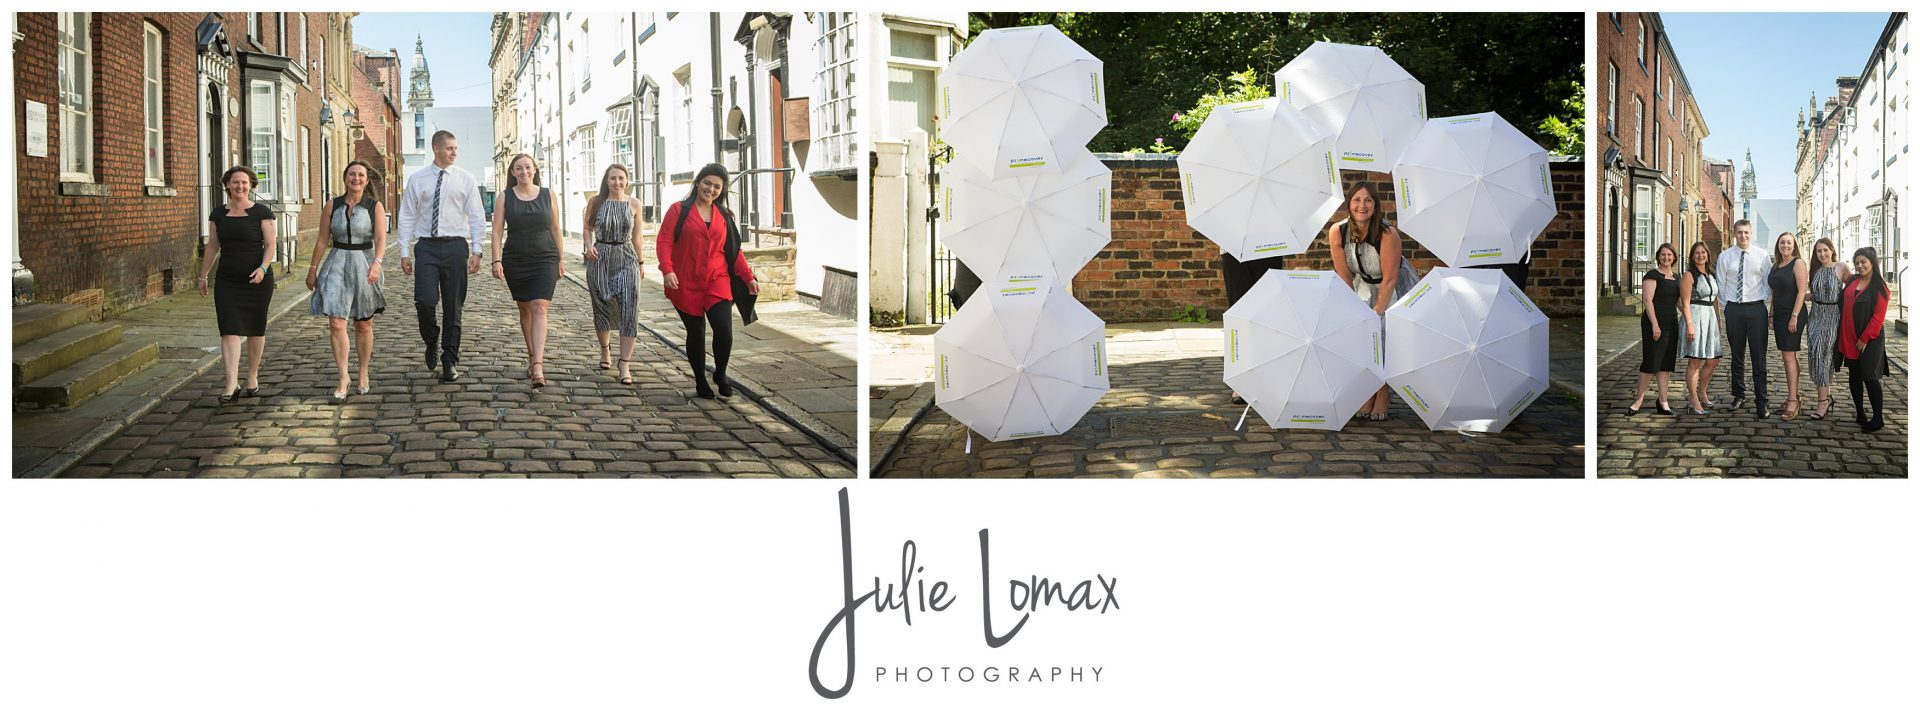 Portrait Photographer julie lomax 07879011603_0006